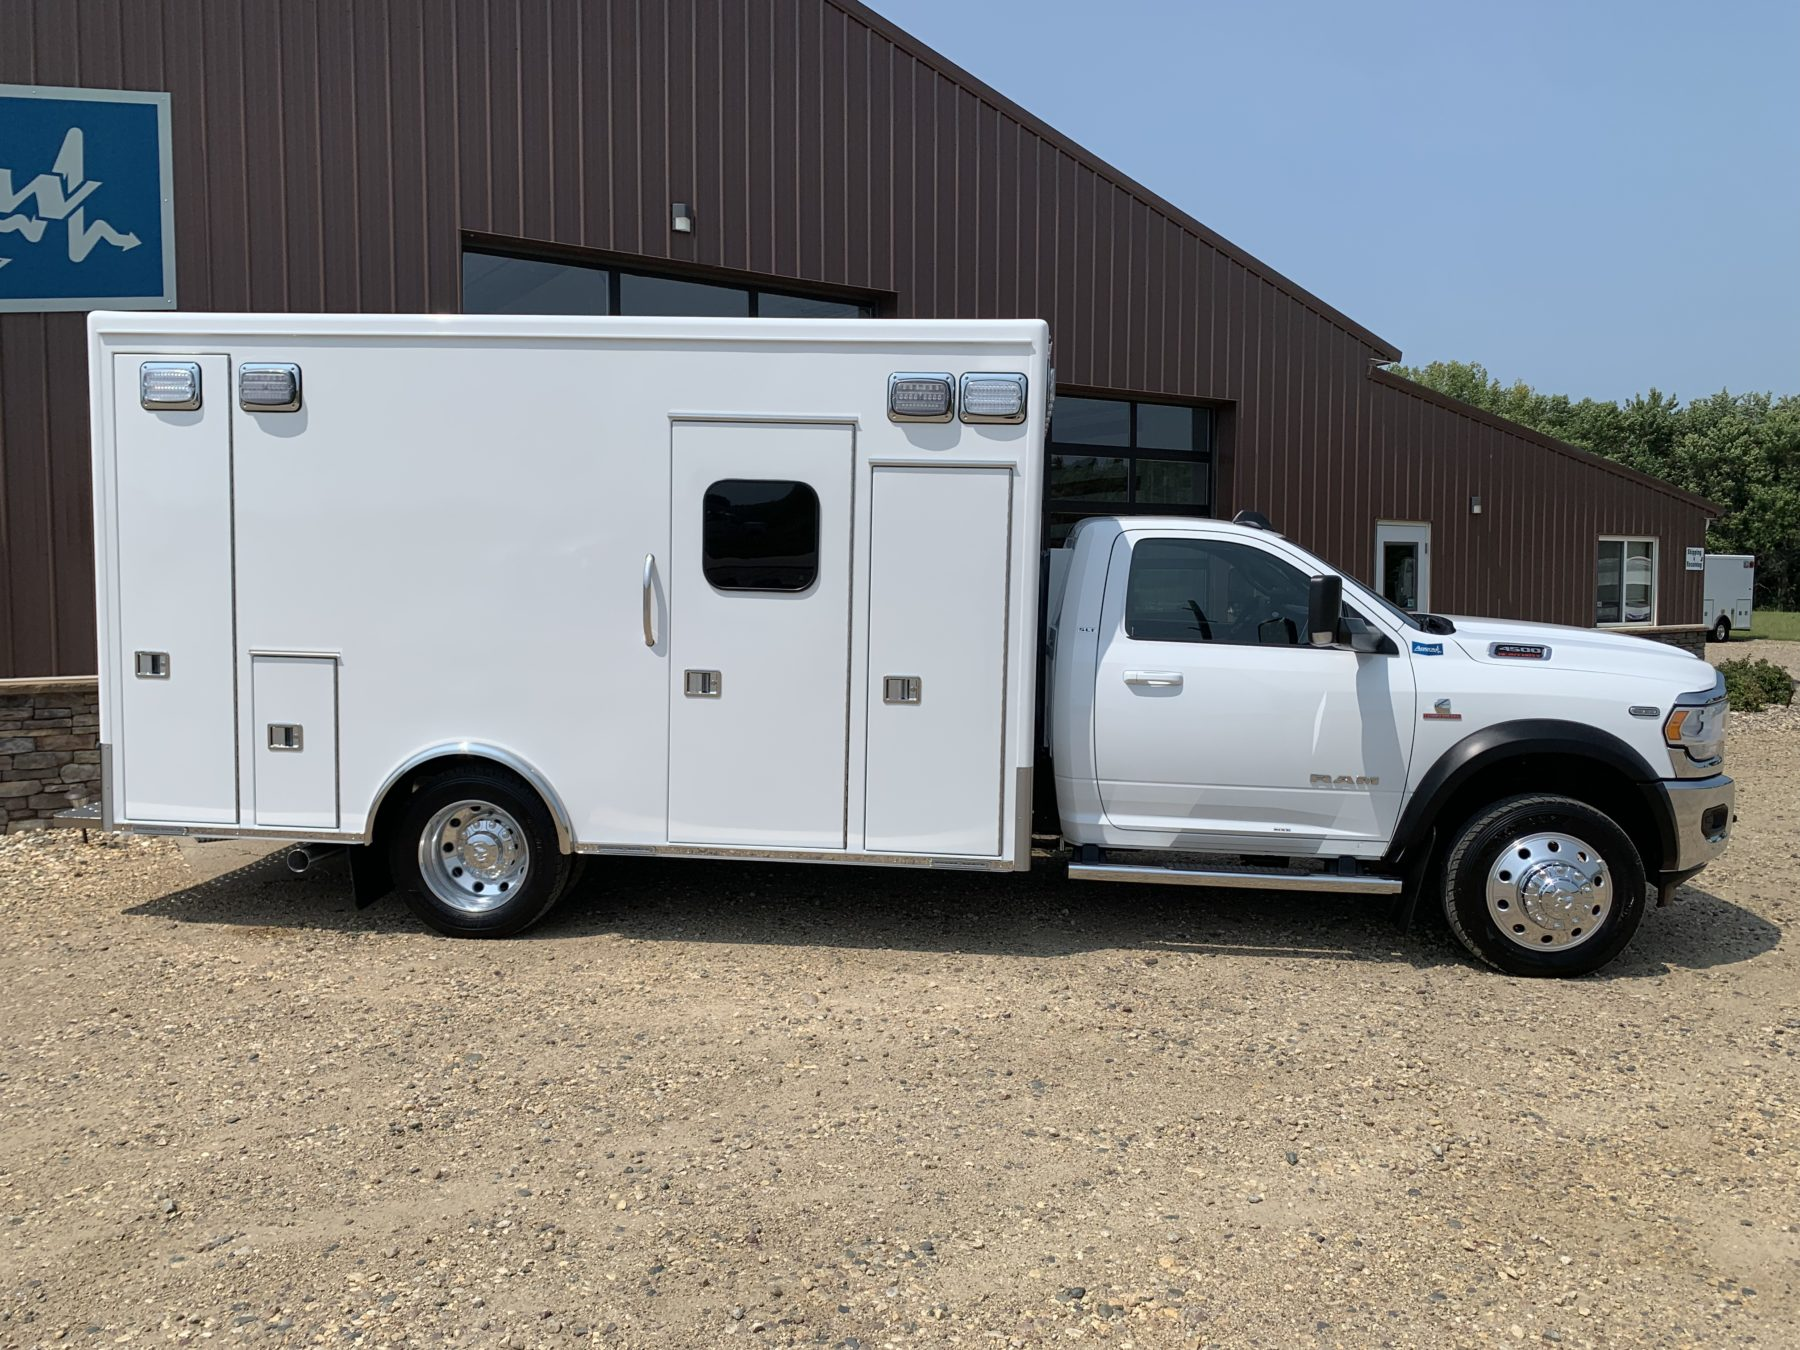 2021 Ram 4500 4x4 Heavy Duty Ambulance For Sale – Picture 7